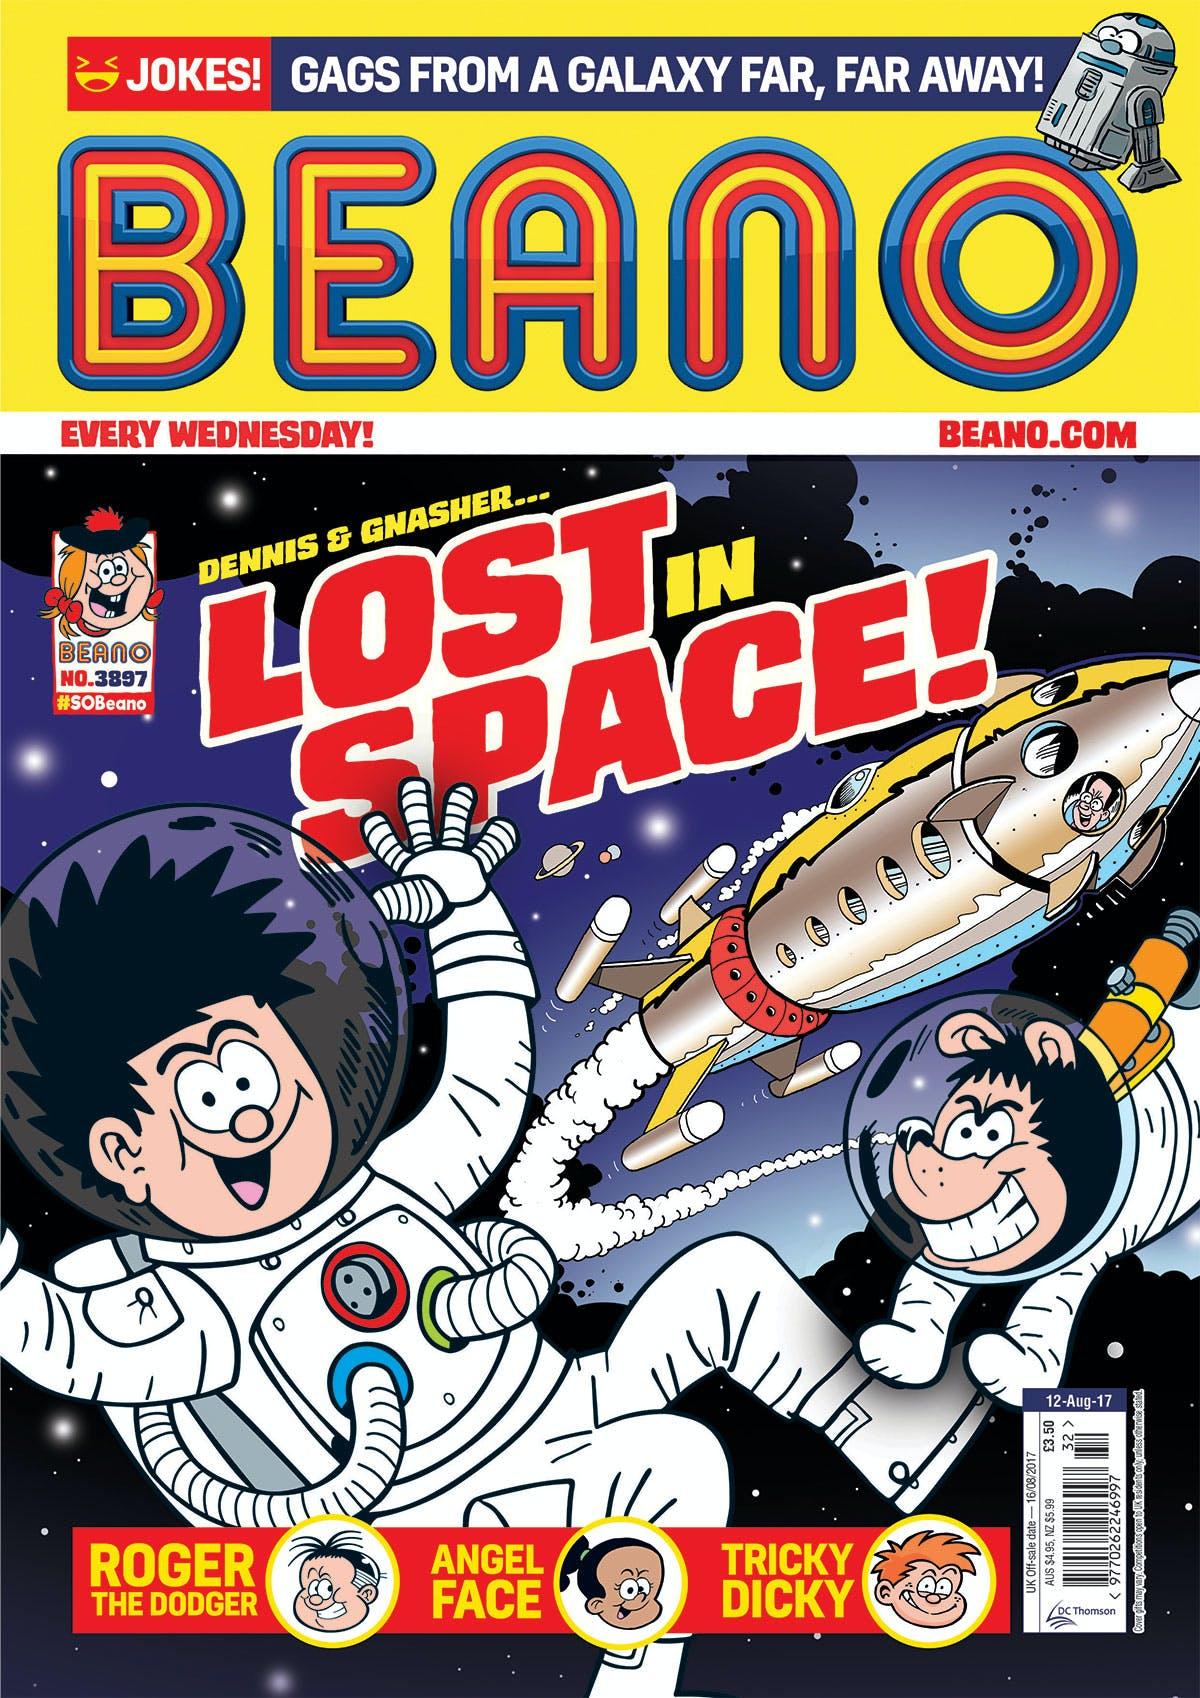 Beano No. 3897 - 12th August 2017